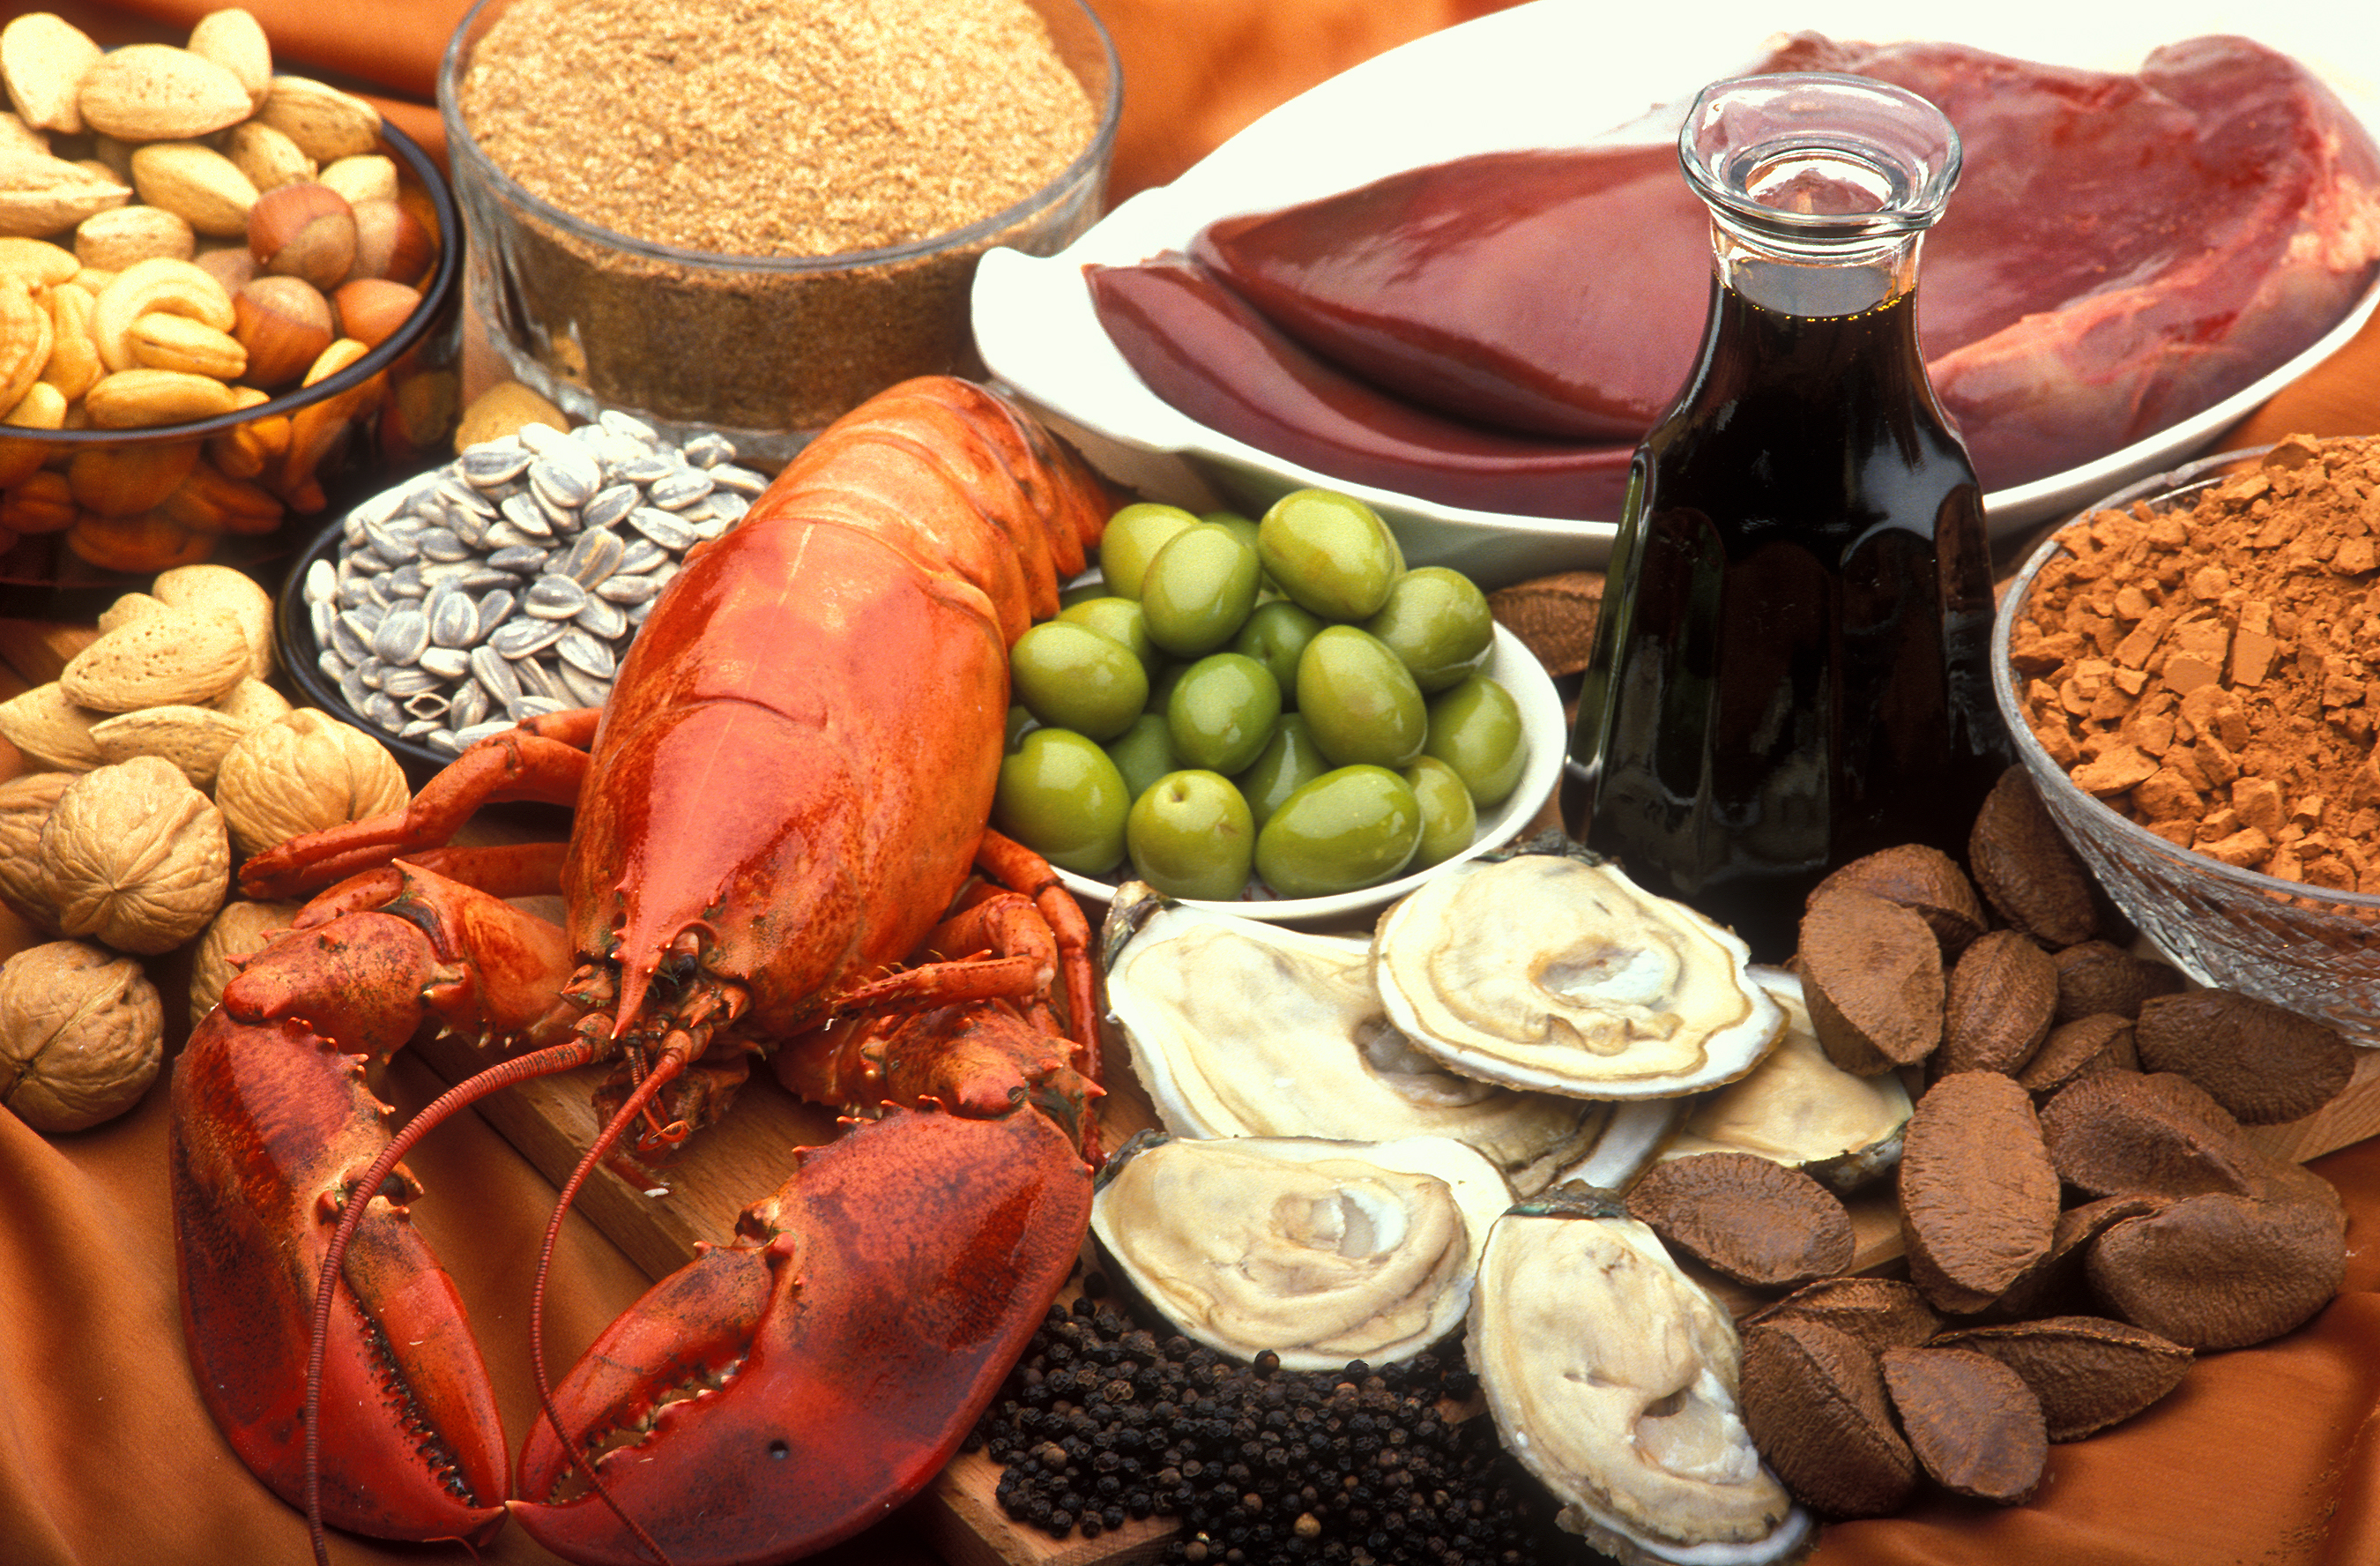 ichsourcesofcopperincludeoysters,beefandlambliver,razilnuts,blackstrapmolasses,cocoa,andblackpepper.oodsourcesincludelobster,nutsandsunflowerseeds,greenolives,avocados,andwheatbran.